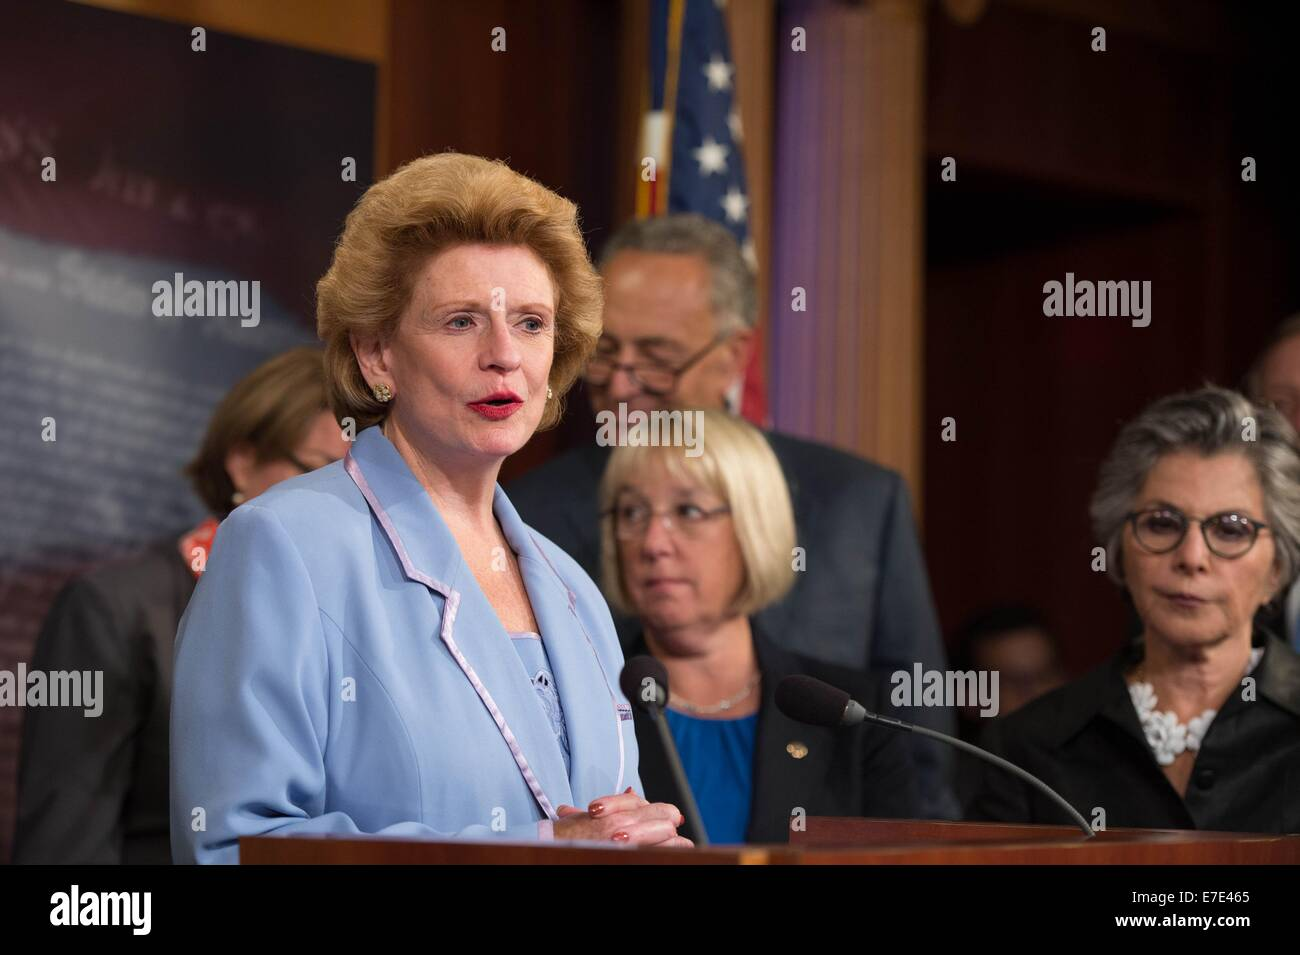 US Democratic Senator Debbie Stabenow during a press conference calling on Republicans to support equal pay for - Stock Image